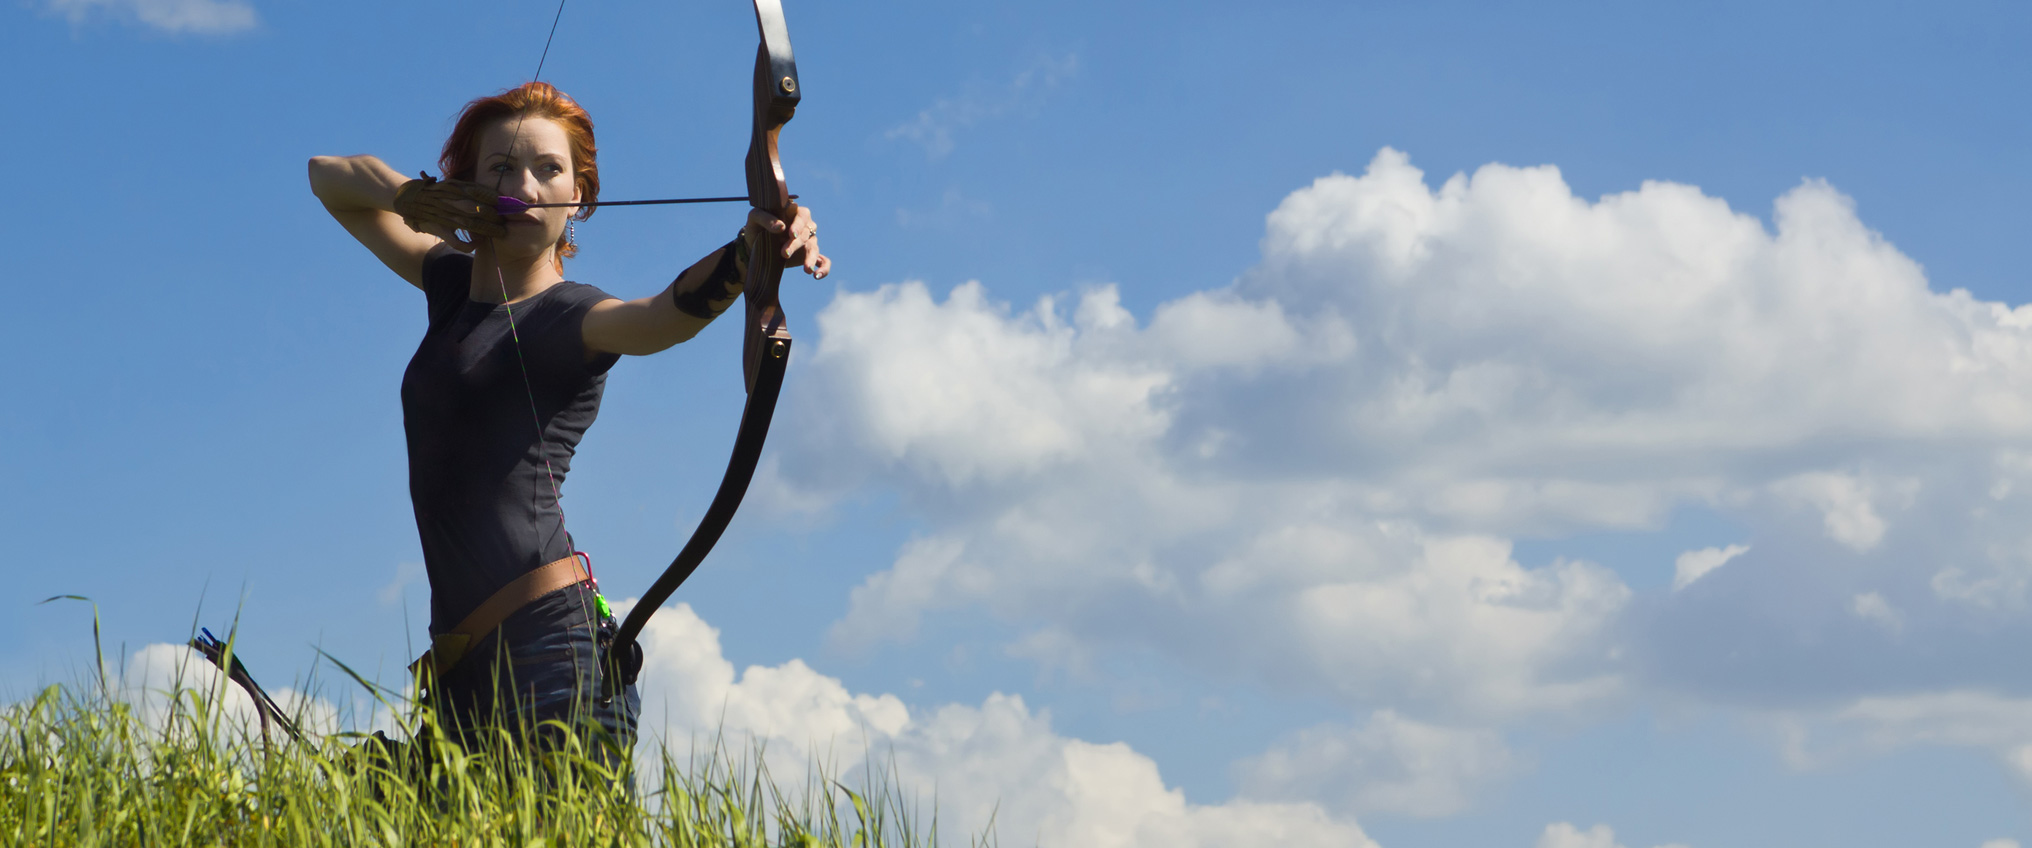 Nice Images Collection: Archery Desktop Wallpapers